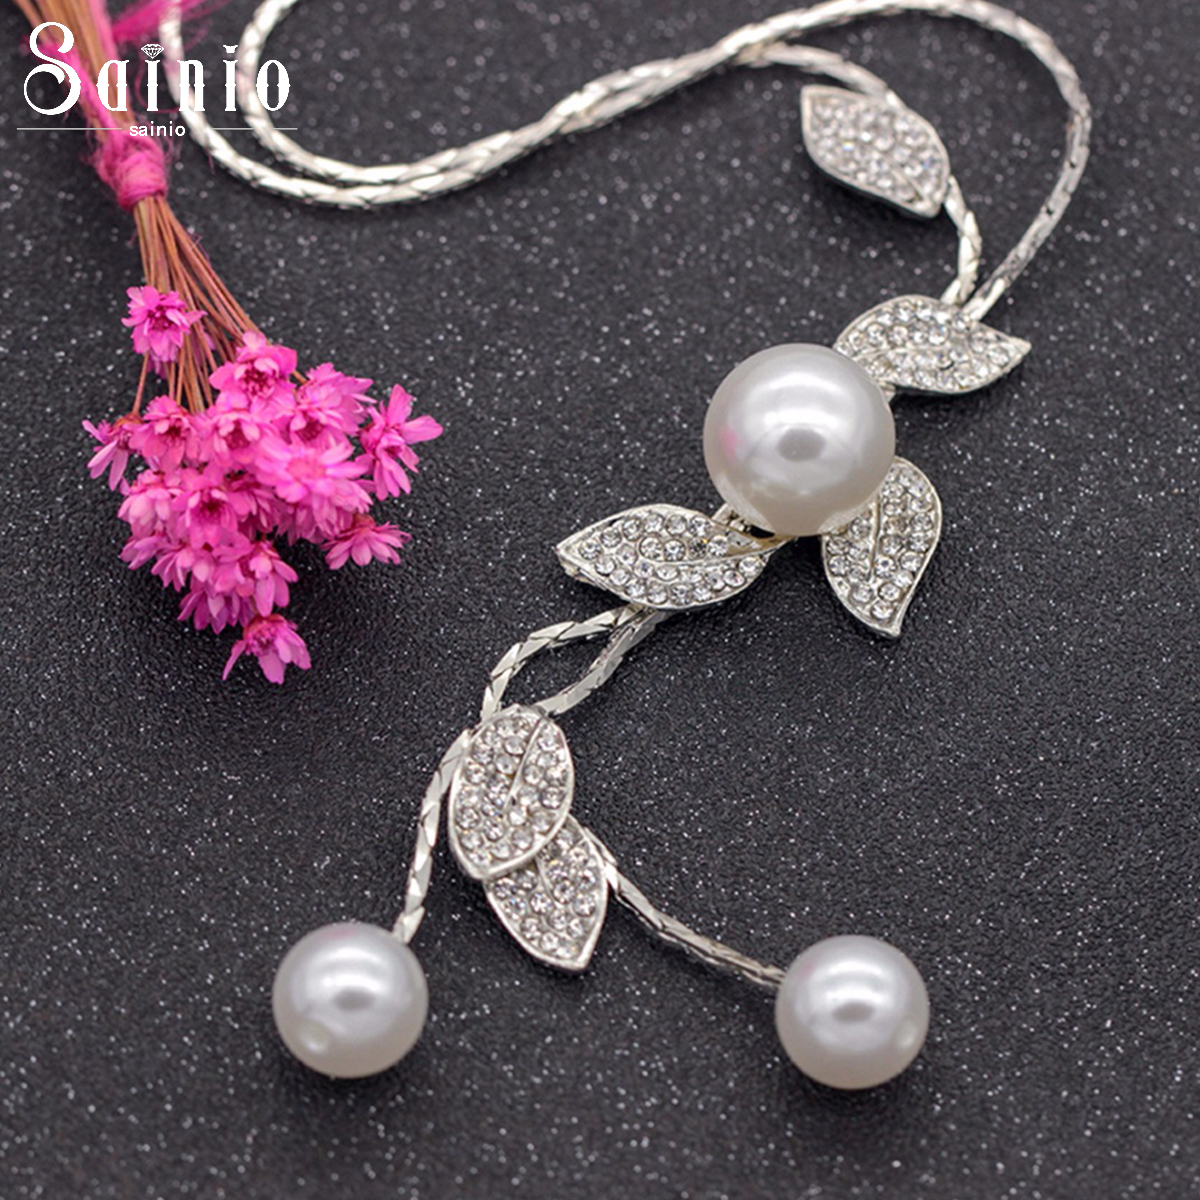 Sainio Leaf Long Beaded Chain Tassel Pendant Necklace Sweater Chain Necklace Women Office Lady Imitation Pearl Jewelry